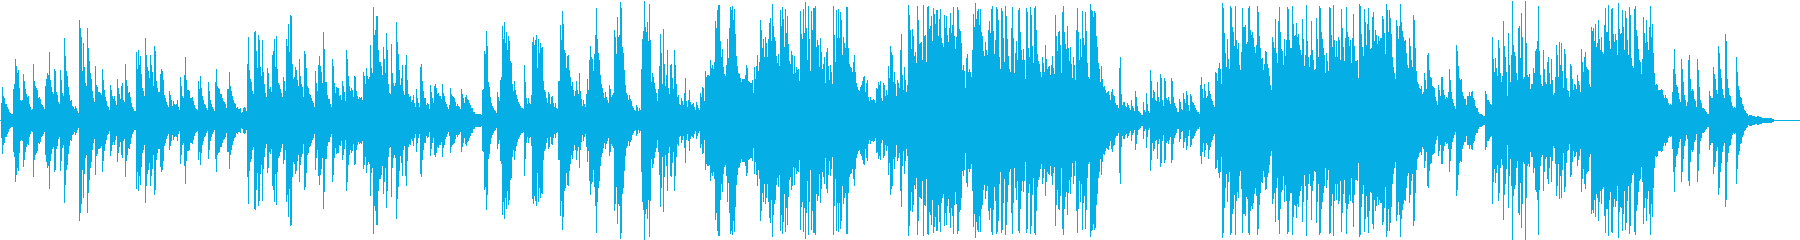 Gentle and calm piano melody's reproduced waveform